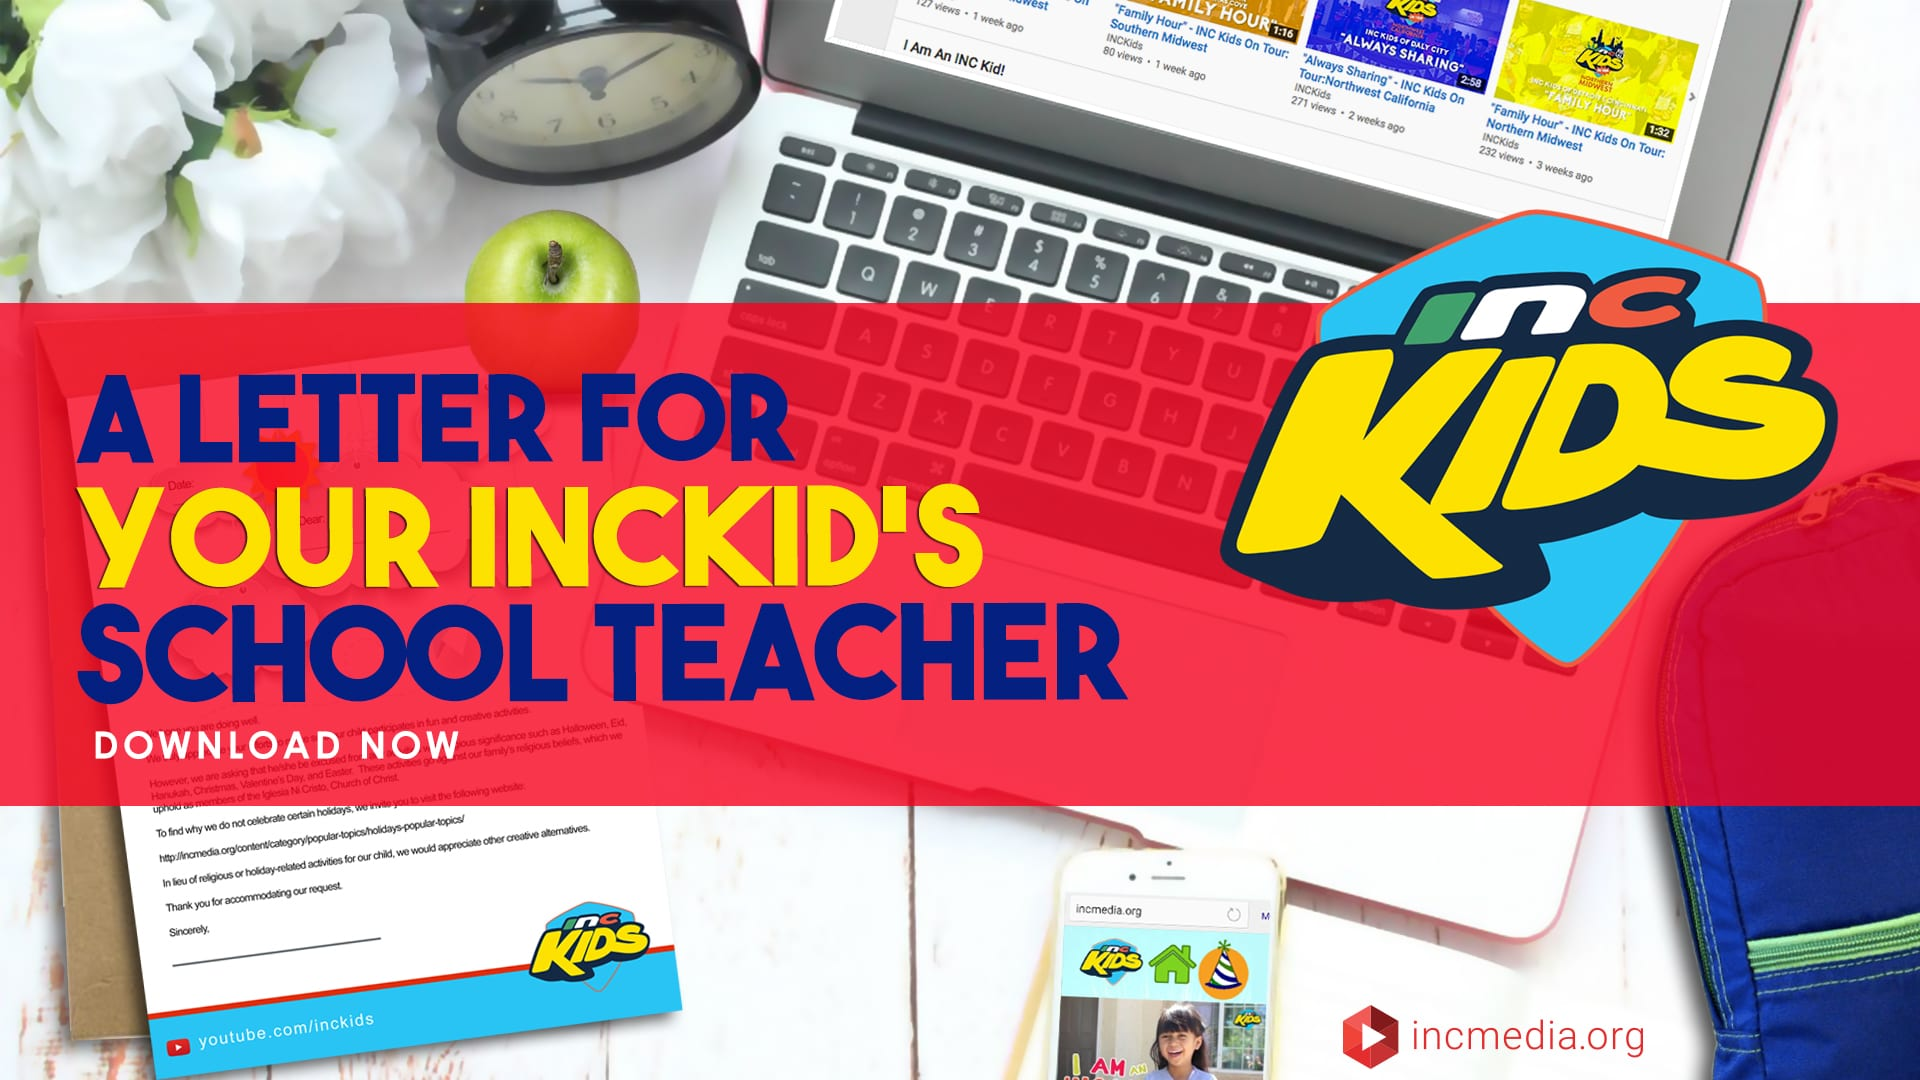 """a table with a laptop, clock, green apple, and phone with overlay text: """"A letter for your INC Kid's school teacher - download now"""""""